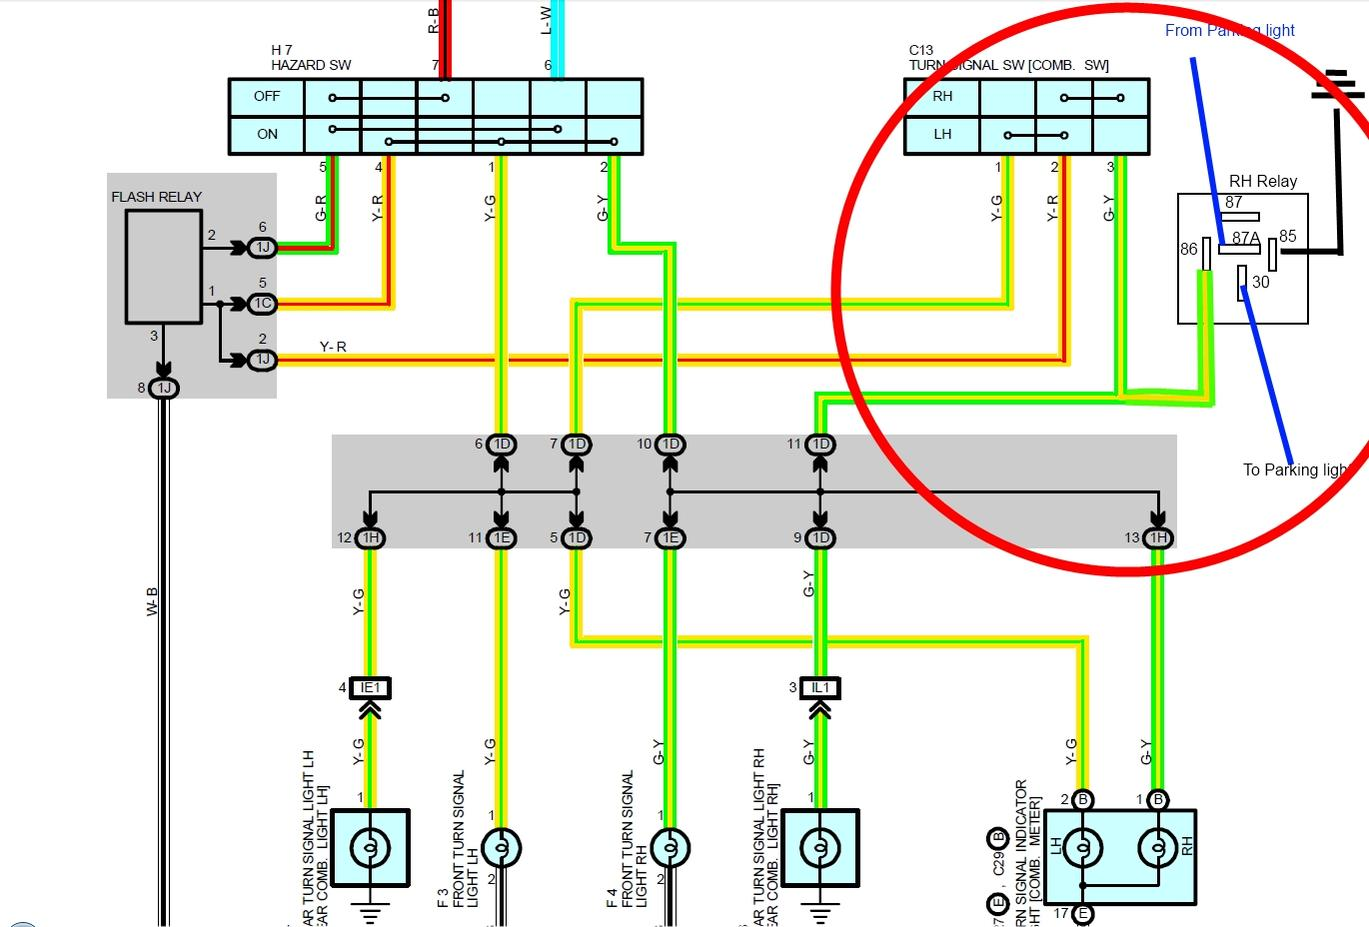 hight resolution of 91 toyota pickup stereo diagram enthusiast wiring diagrams u2022 rh rasalibre co 91 toyota pickup stereo wiring diagram 91 toyota pickup stereo wiring